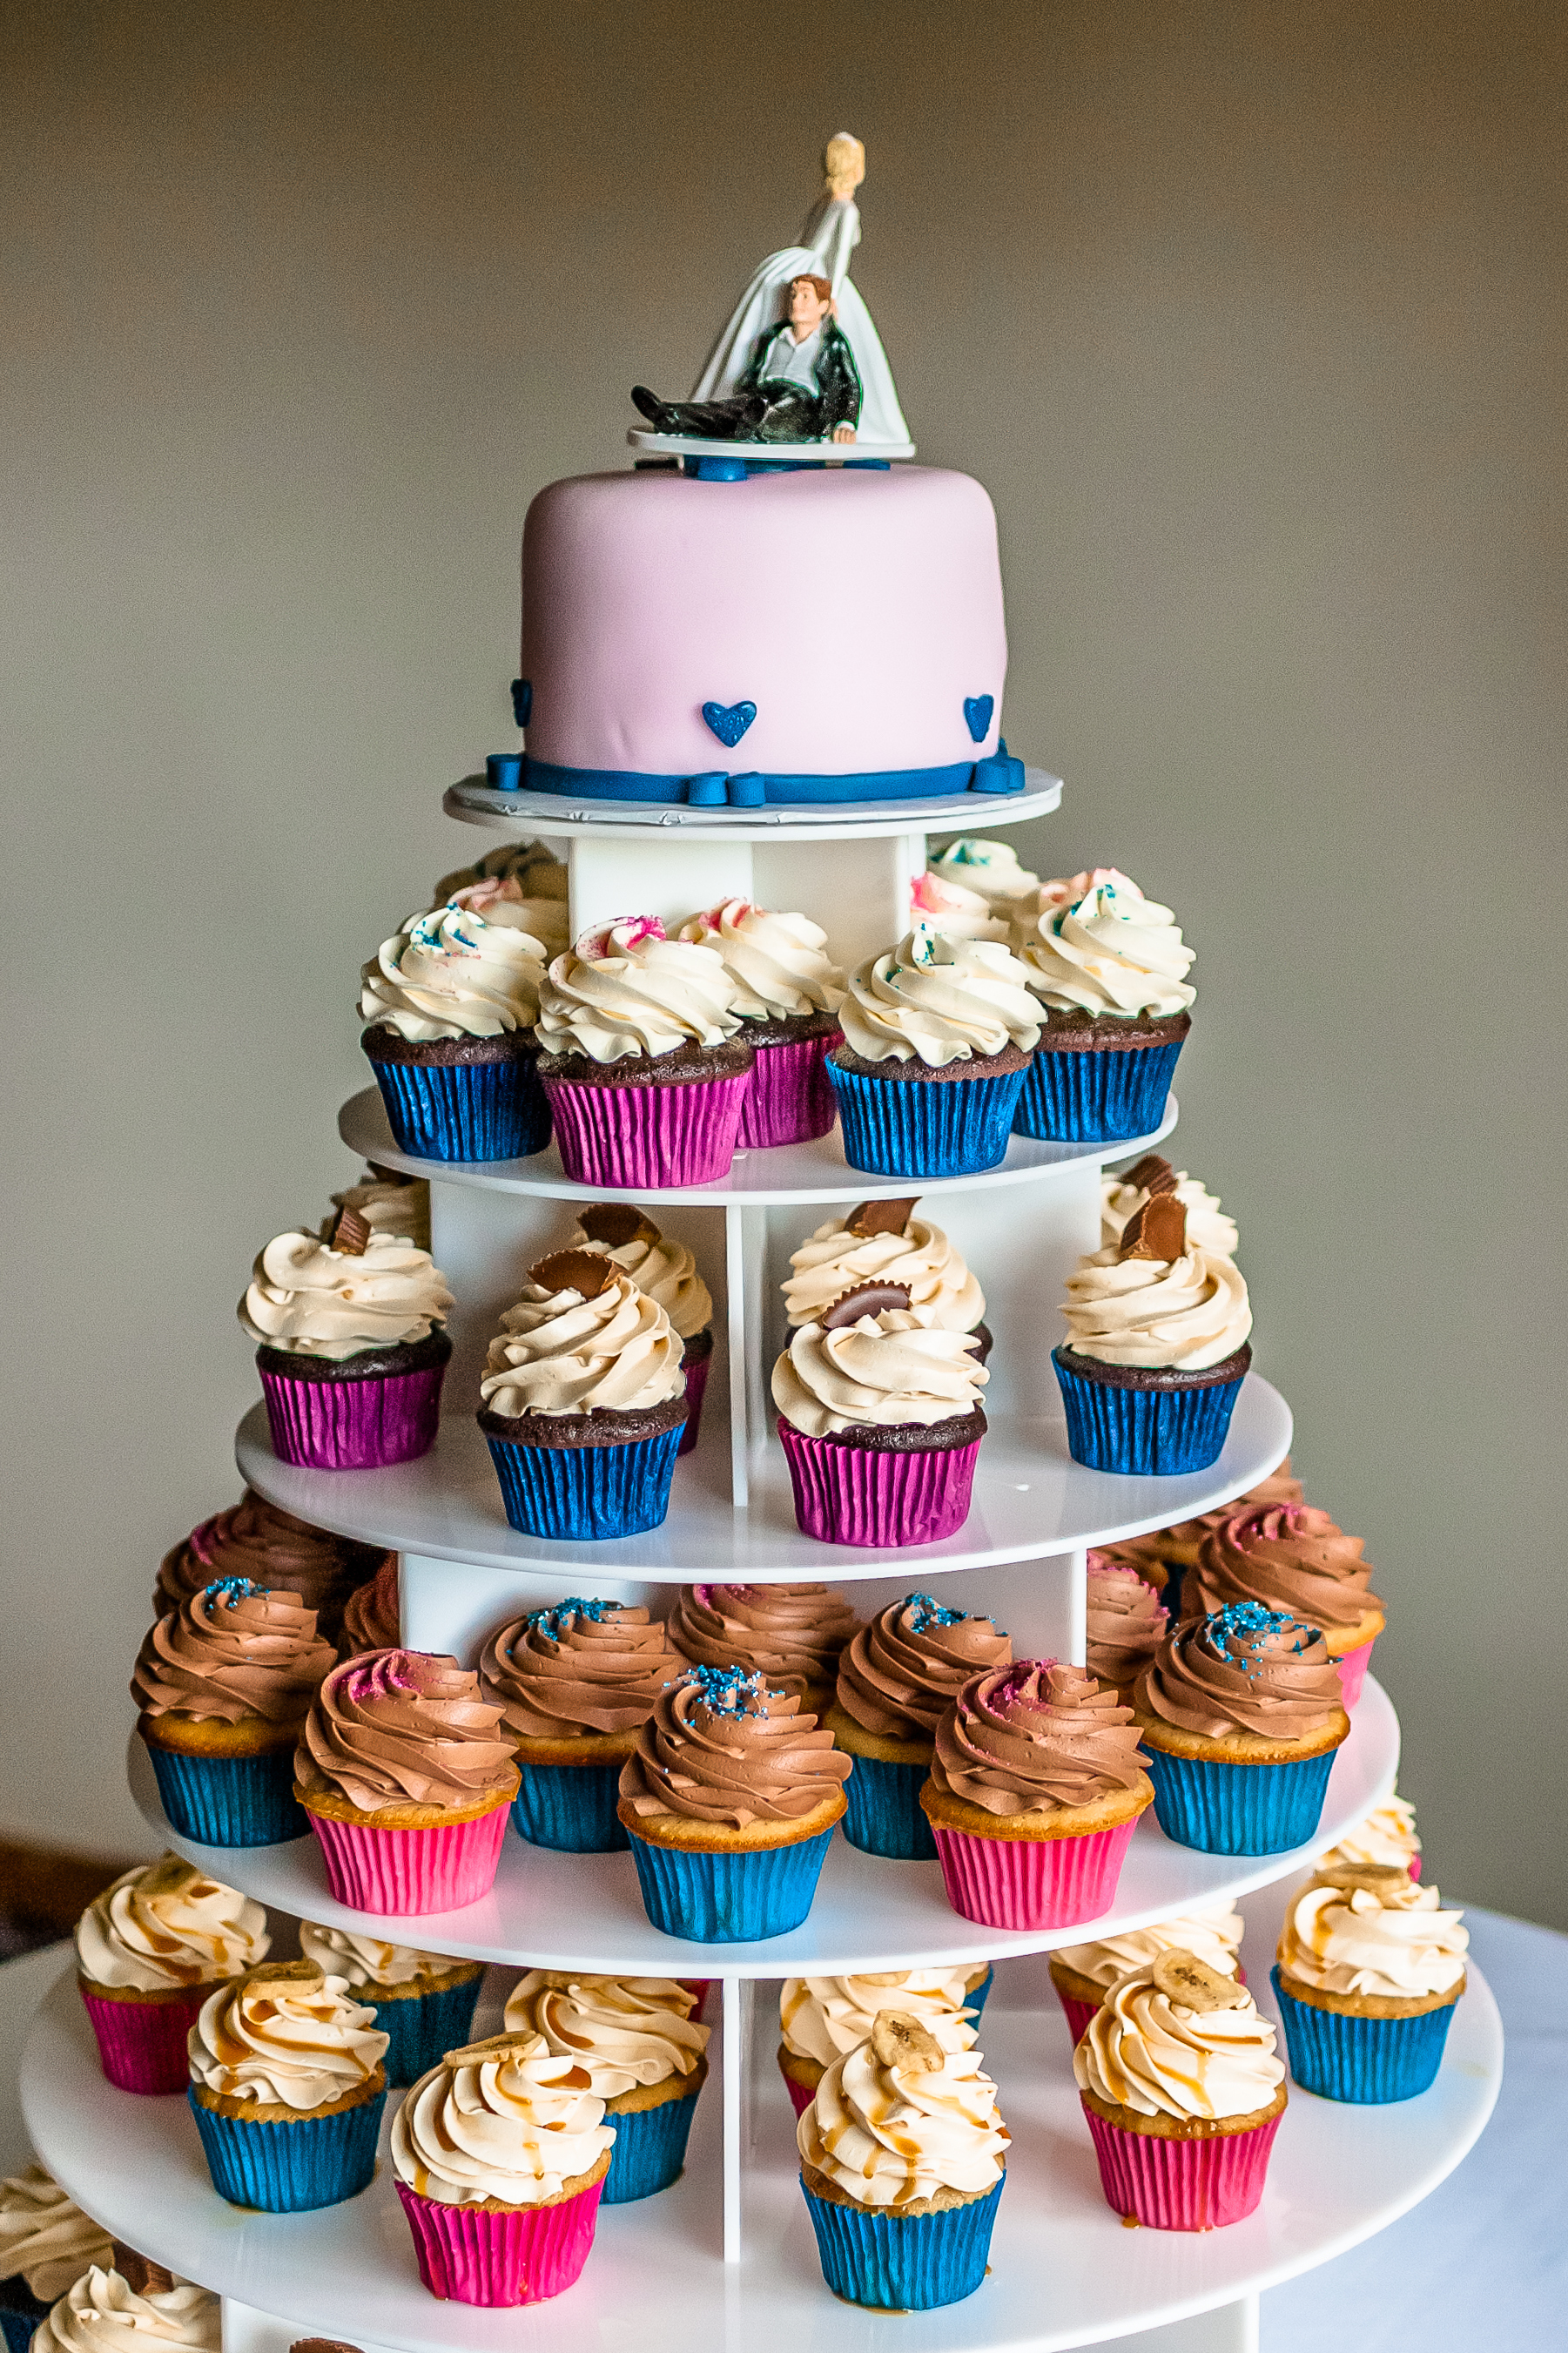 Wedding cupcakes on tower stand